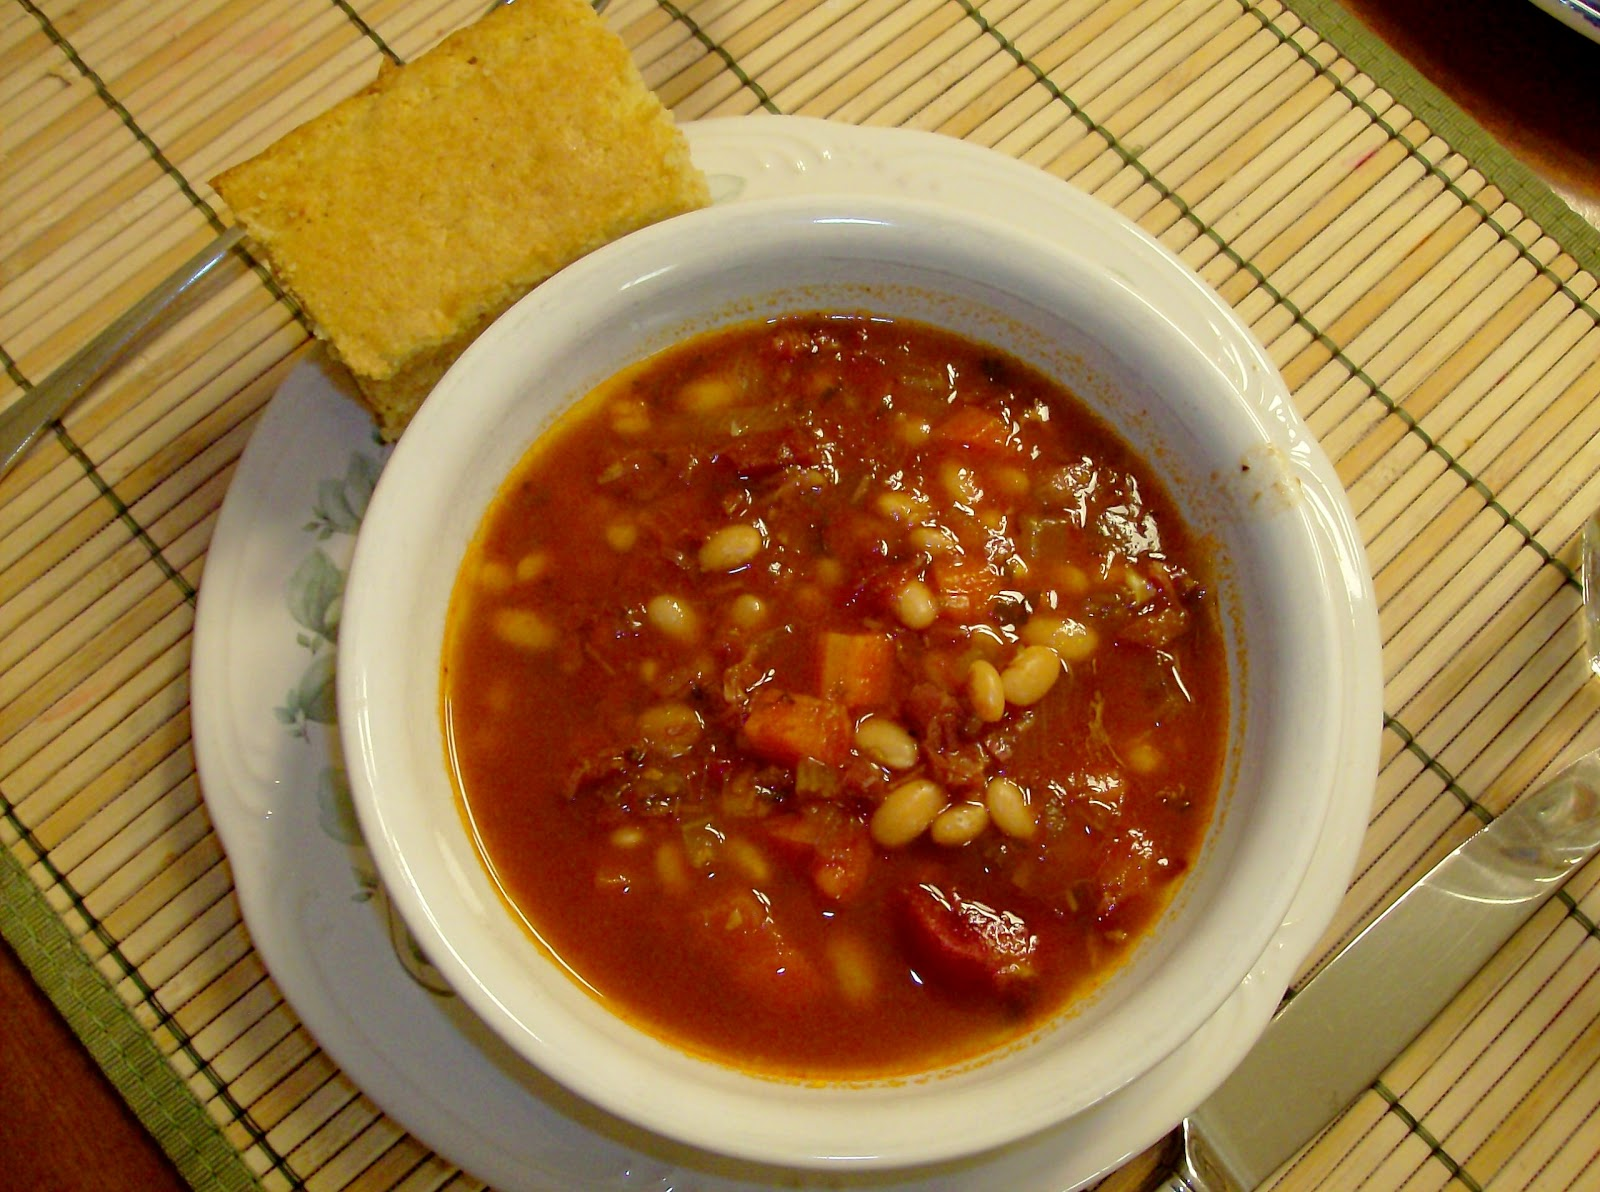 ... : Dijon Chicken vs. Ham and Bean Soup - 365 Days of Slow Cooking